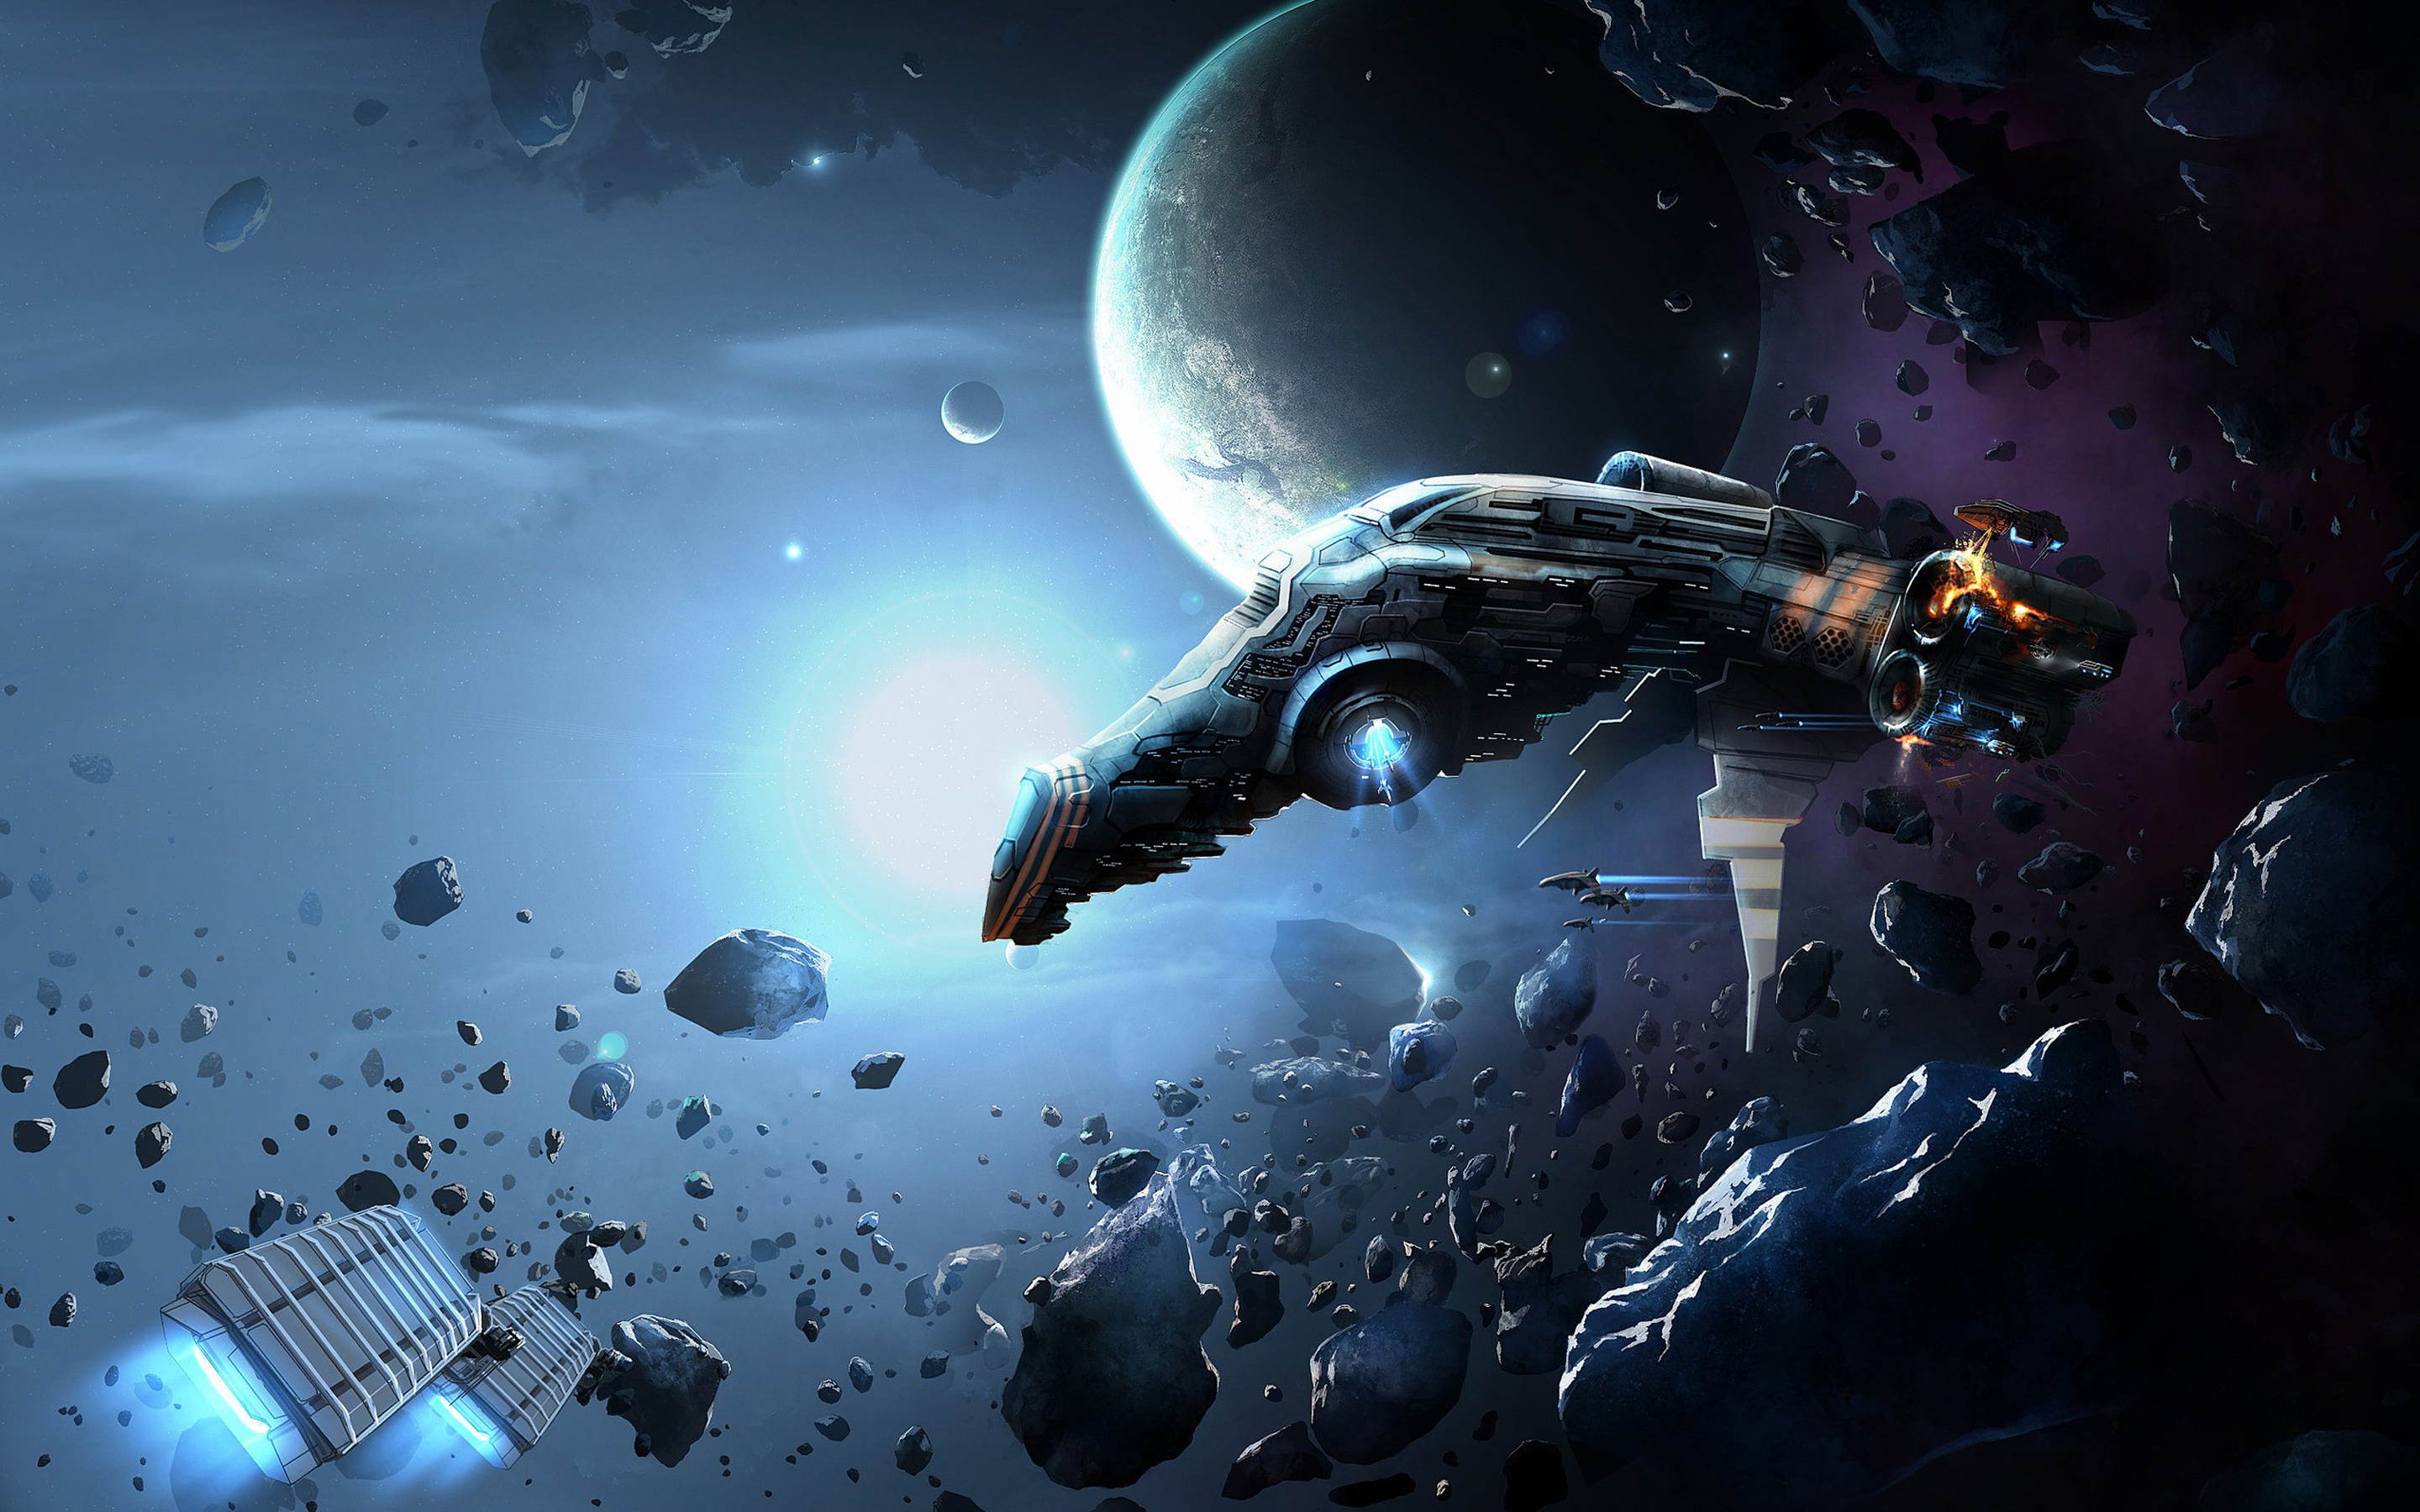 Eve Online Wallpapers HD Wallpapers 2880x1800